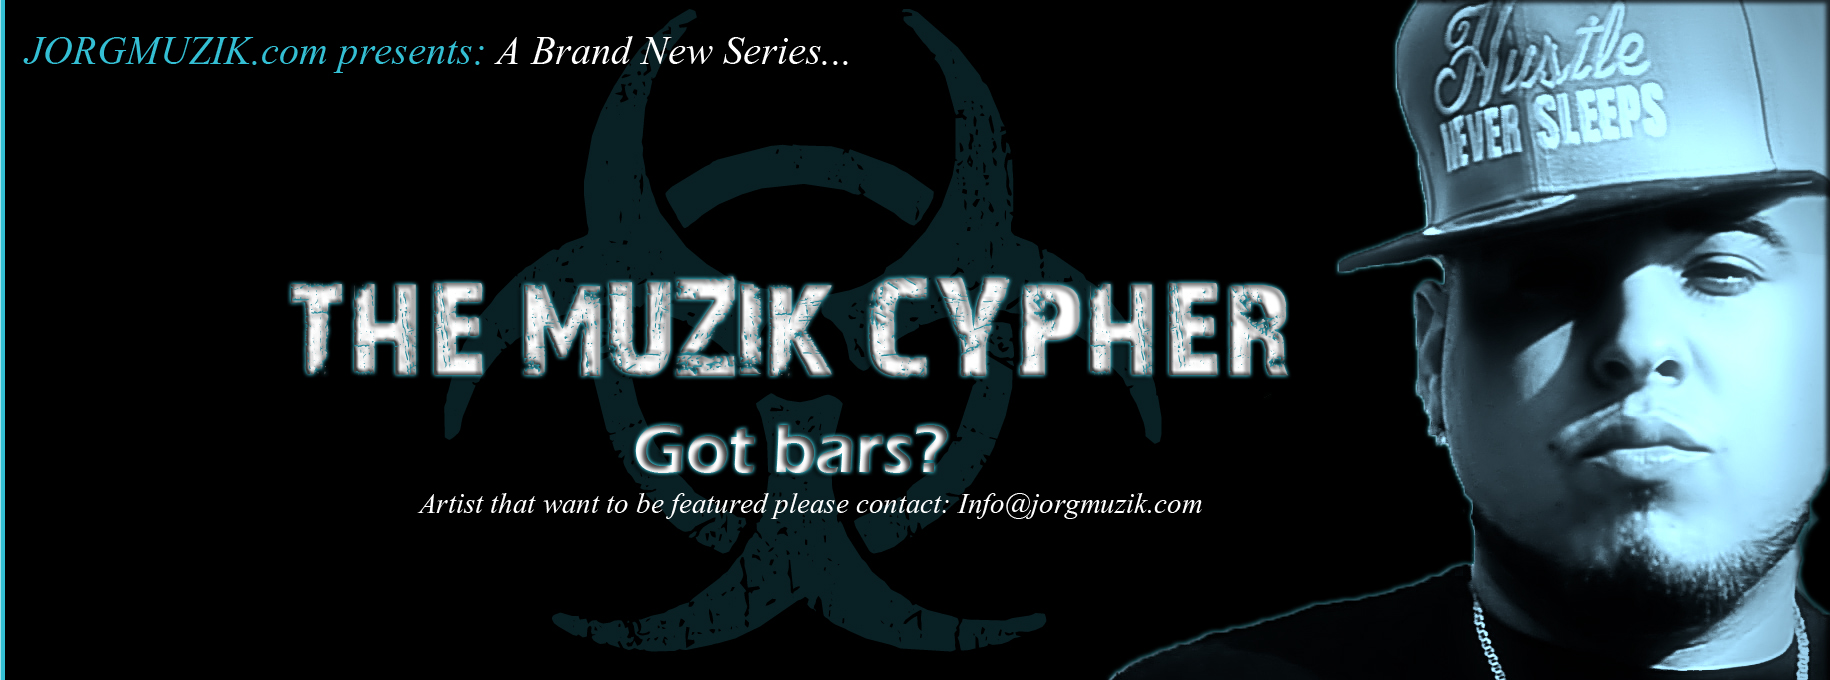 The Muzik Cypher (#TMC) A monthly video series. Jor-G & Artist showcase raw rhymes and killer flows acappella.  please Subscribe for upcoming videos and Cyphers.<br />to be featured on The Muzik Cypher please contact: info@jorgmuzik.com<br />for more info please visit www.JORGMUZIK.com/CYPHER